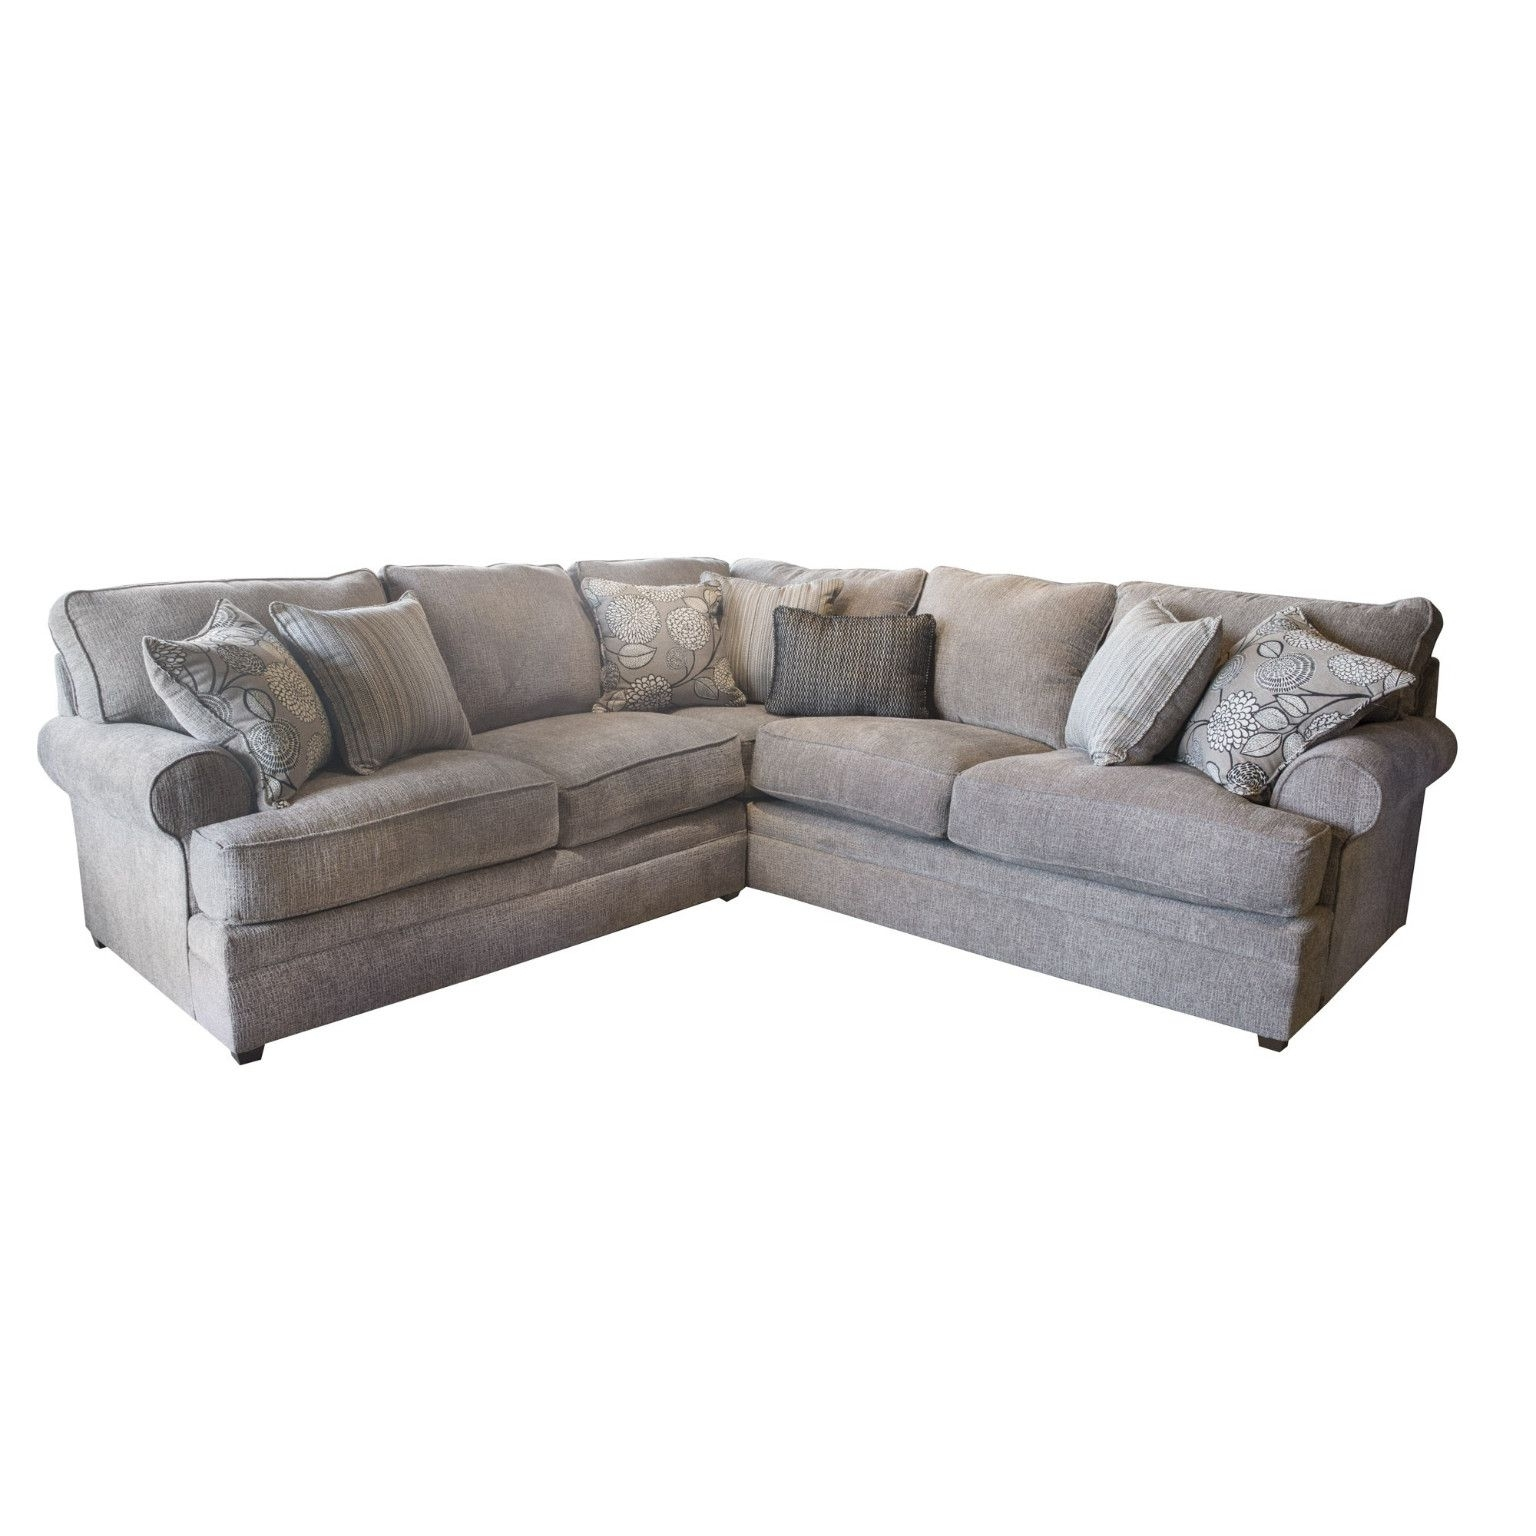 Macey Pewter 2 Piece Sectional Beauty Restsimmons $ (View 13 of 15)